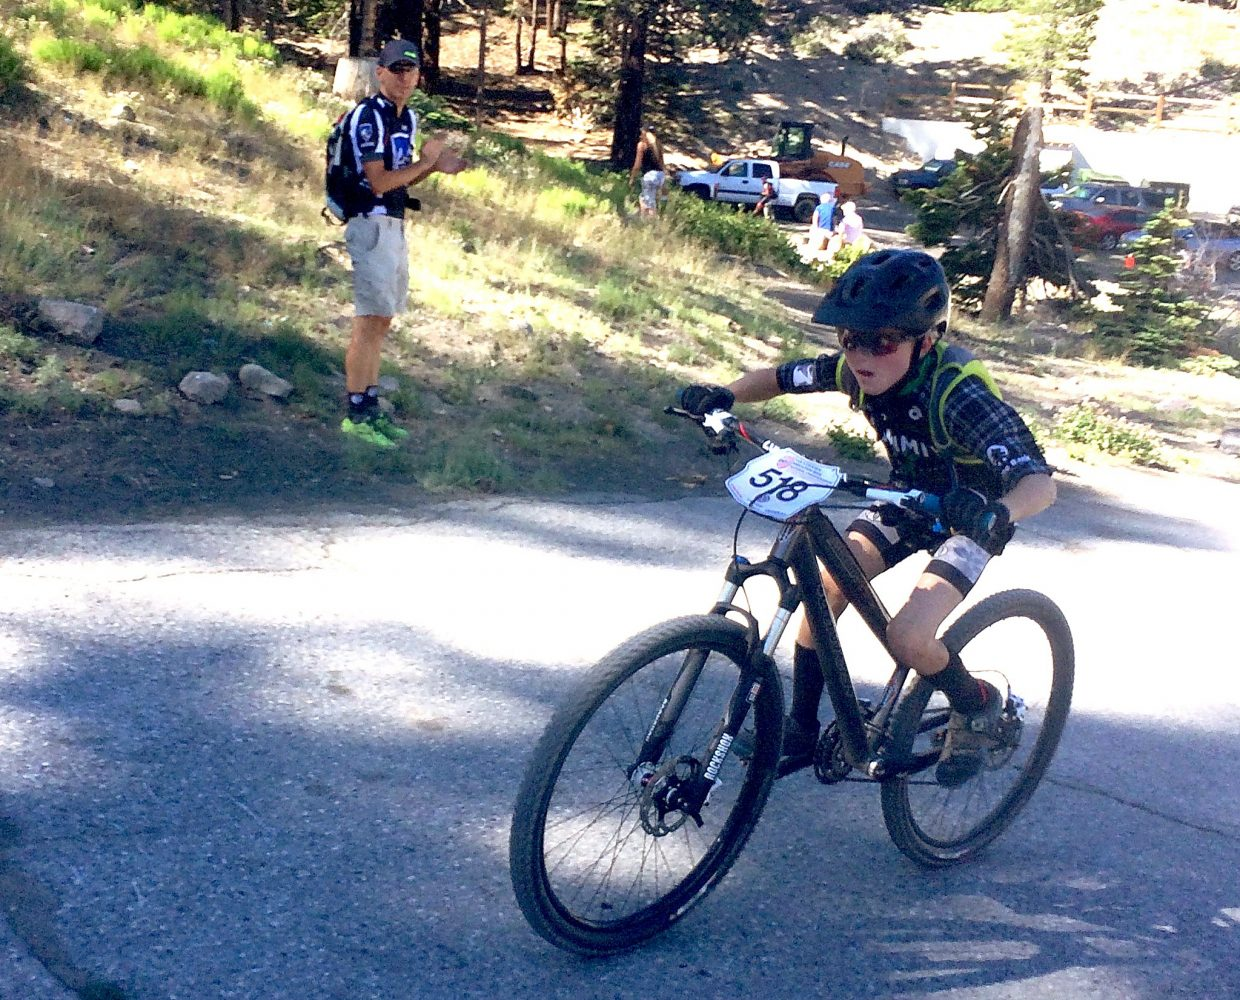 Summit's Nico Konecny, 10, at a recent mountain bike race. The Summit native recently won the 2016 Volkswagen USA Cycling Mountain Bike National Championships at Mammoth Mountain, California, beating a field of 21 competitors in the 9-10 division.